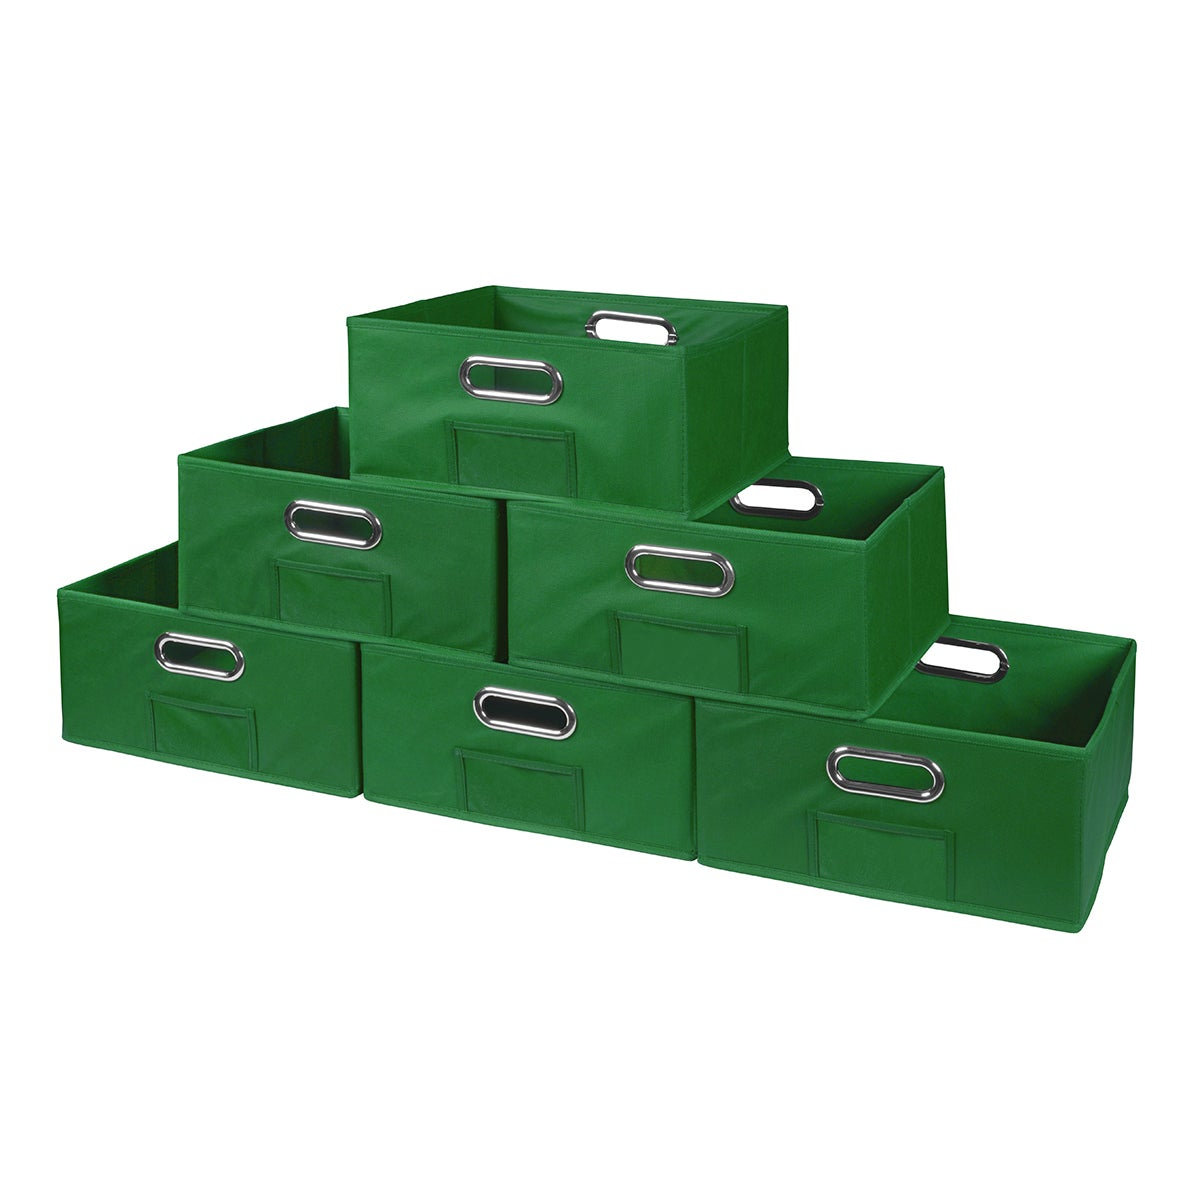 Shop Niche Cubo Half-Size Foldable Fabric Storage Bins- Set of 12 - Free Shipping On Orders Over $45 - Overstock.com - 14803639  sc 1 st  Overstock.com & Shop Niche Cubo Half-Size Foldable Fabric Storage Bins- Set of 12 ...